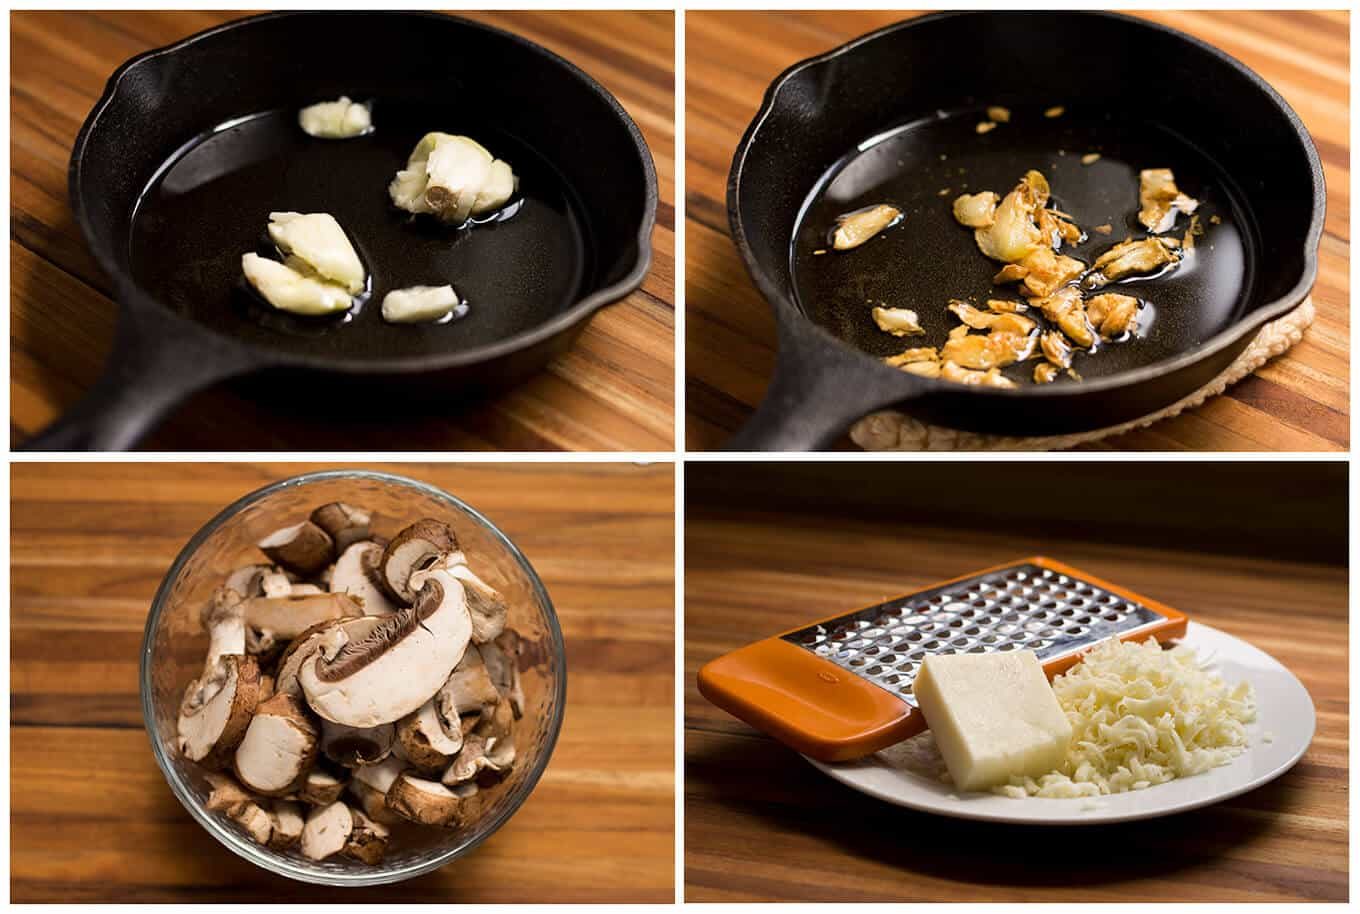 Collage of raw garlic, fried garlic, sliced mushrooms, and grated cheese.